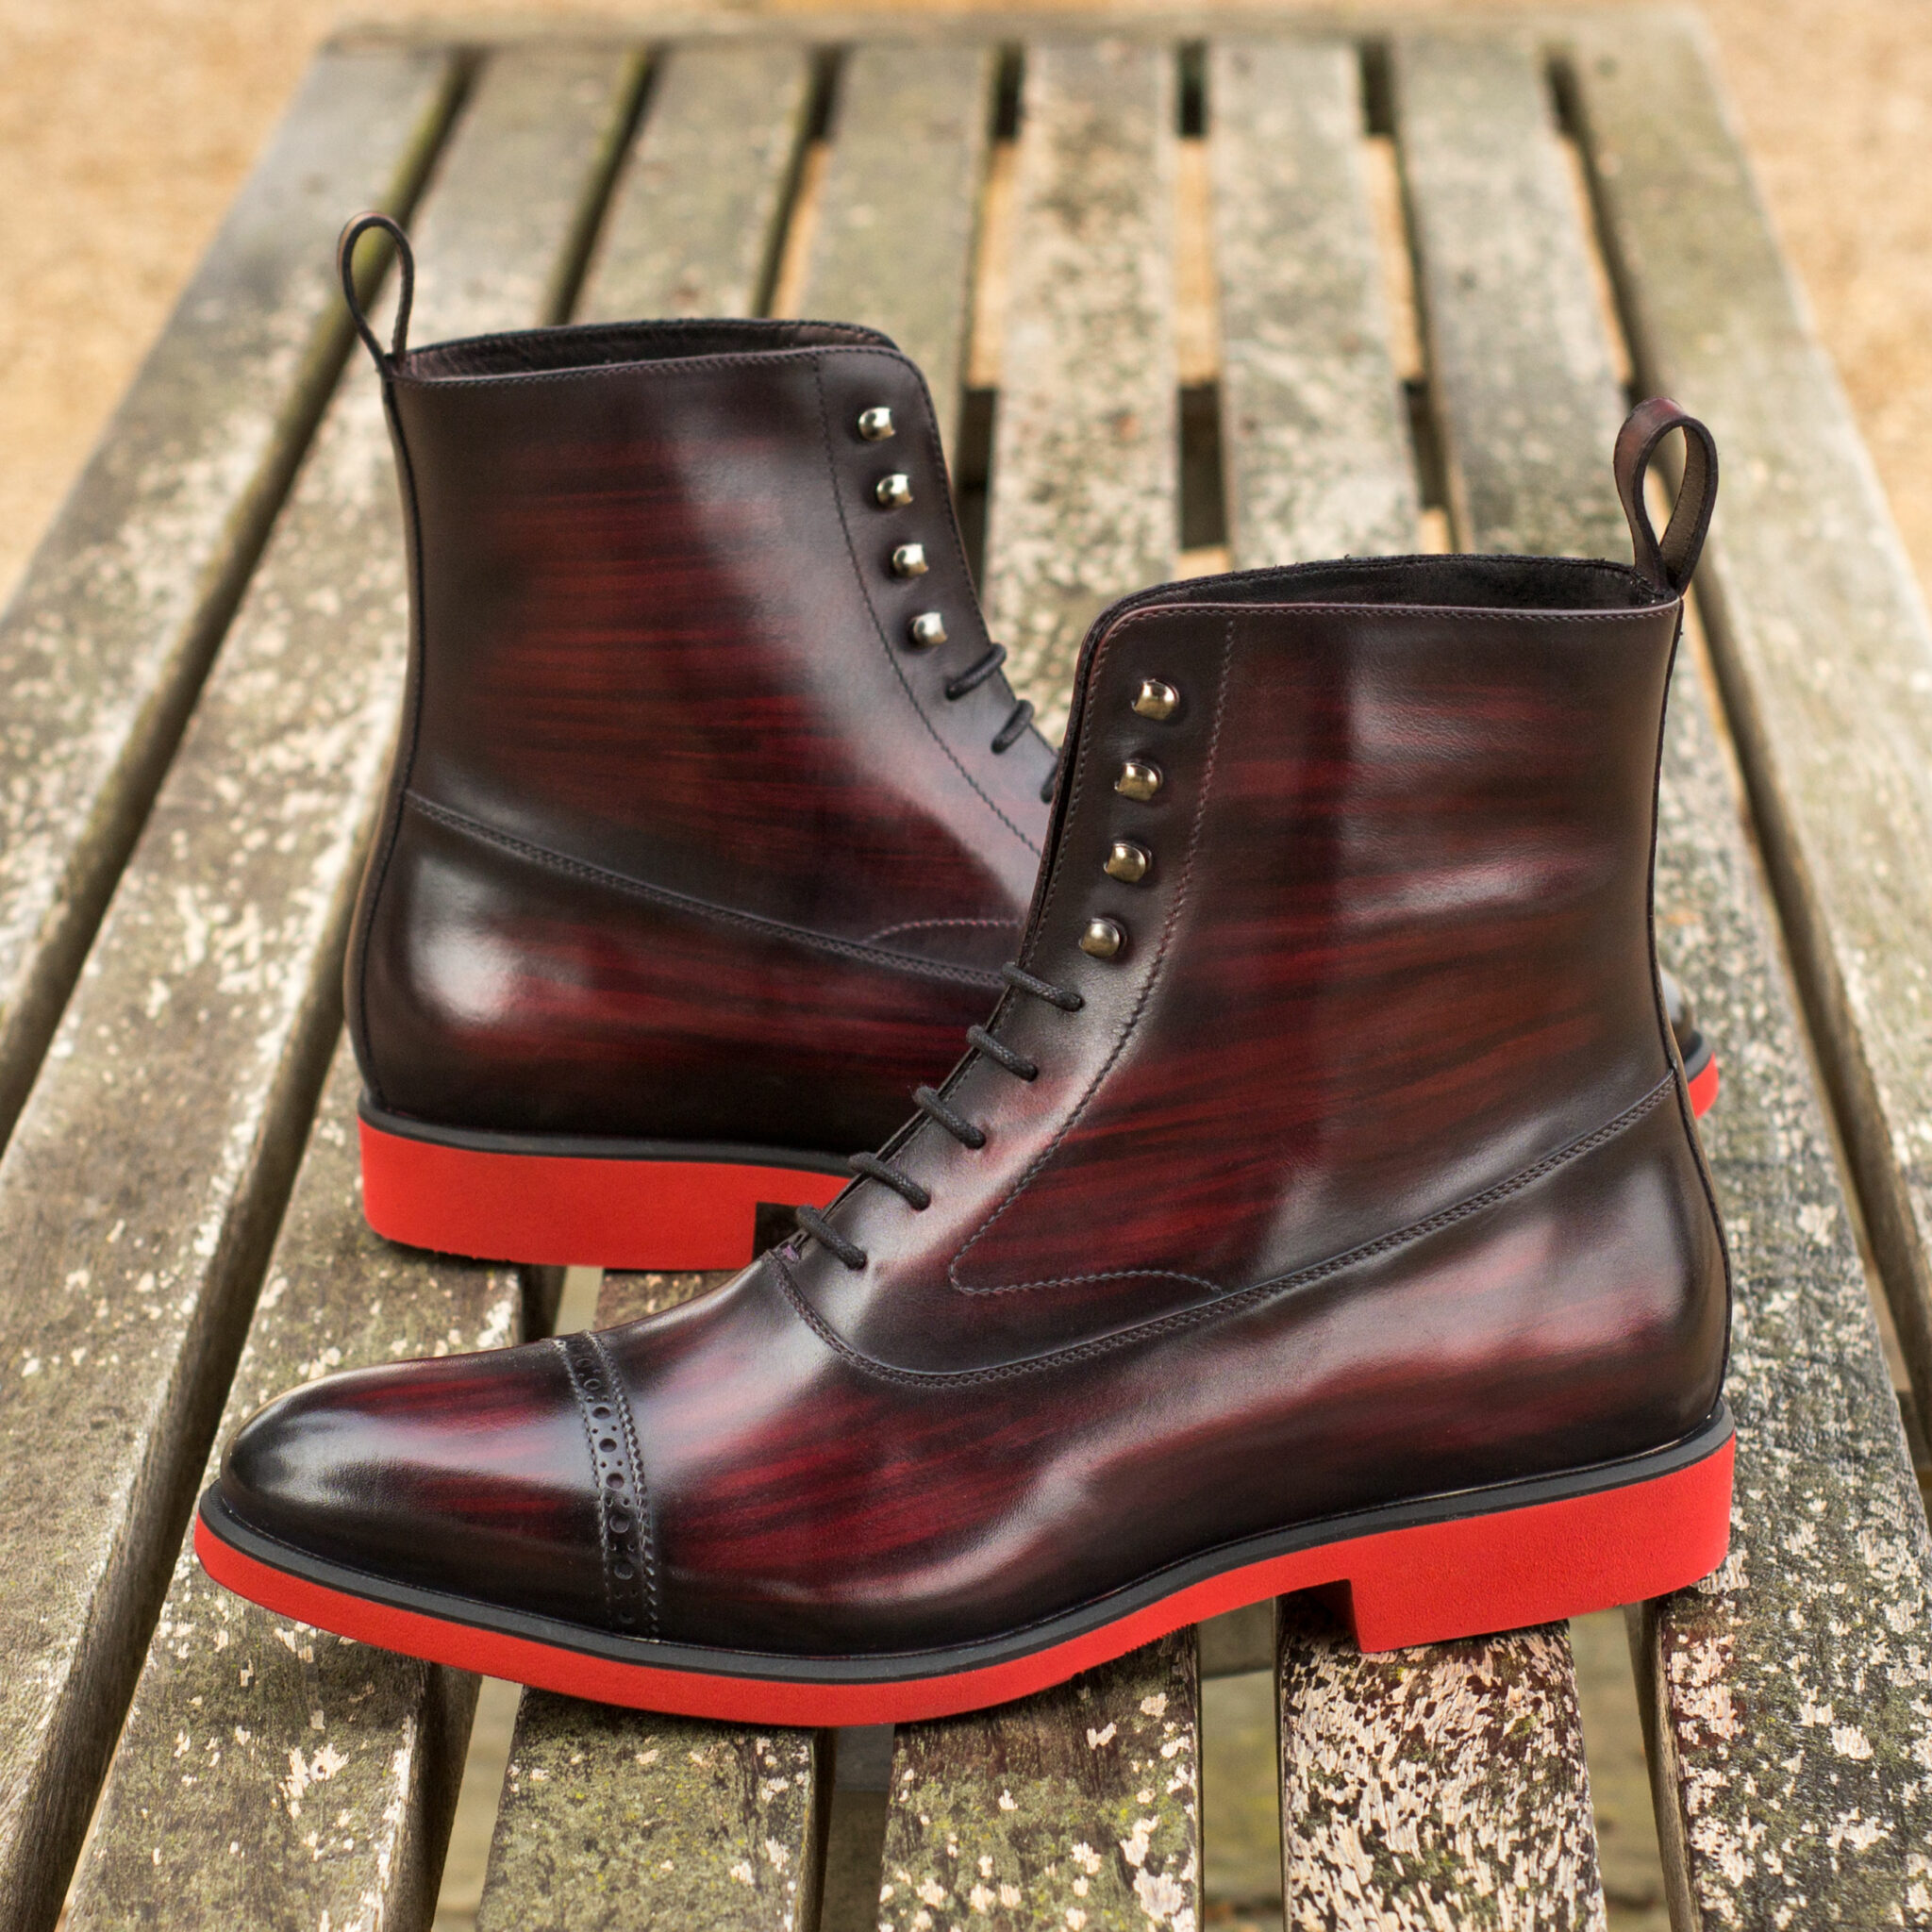 Balmoral boot  burgundy crust patina : 370€